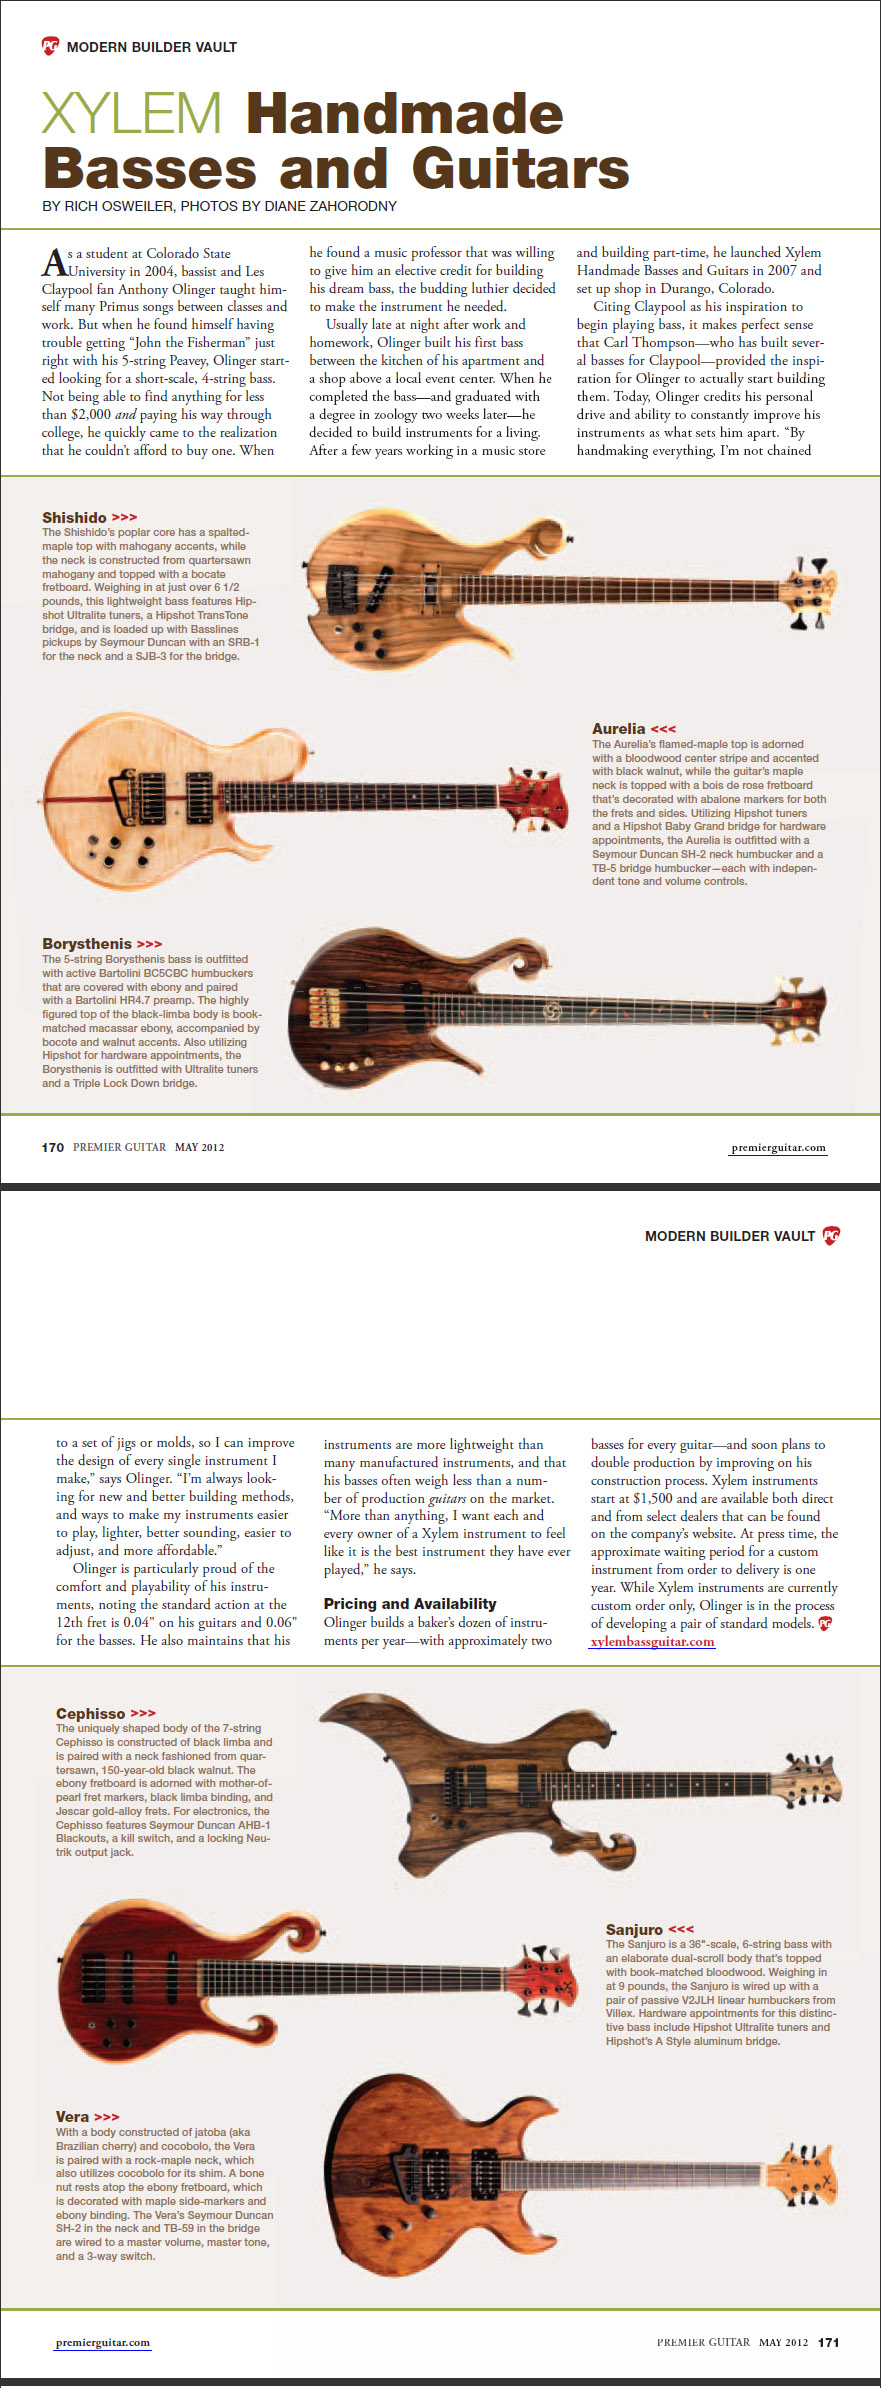 Premier Guitar Magazine article about Xylem Basses and Guitars